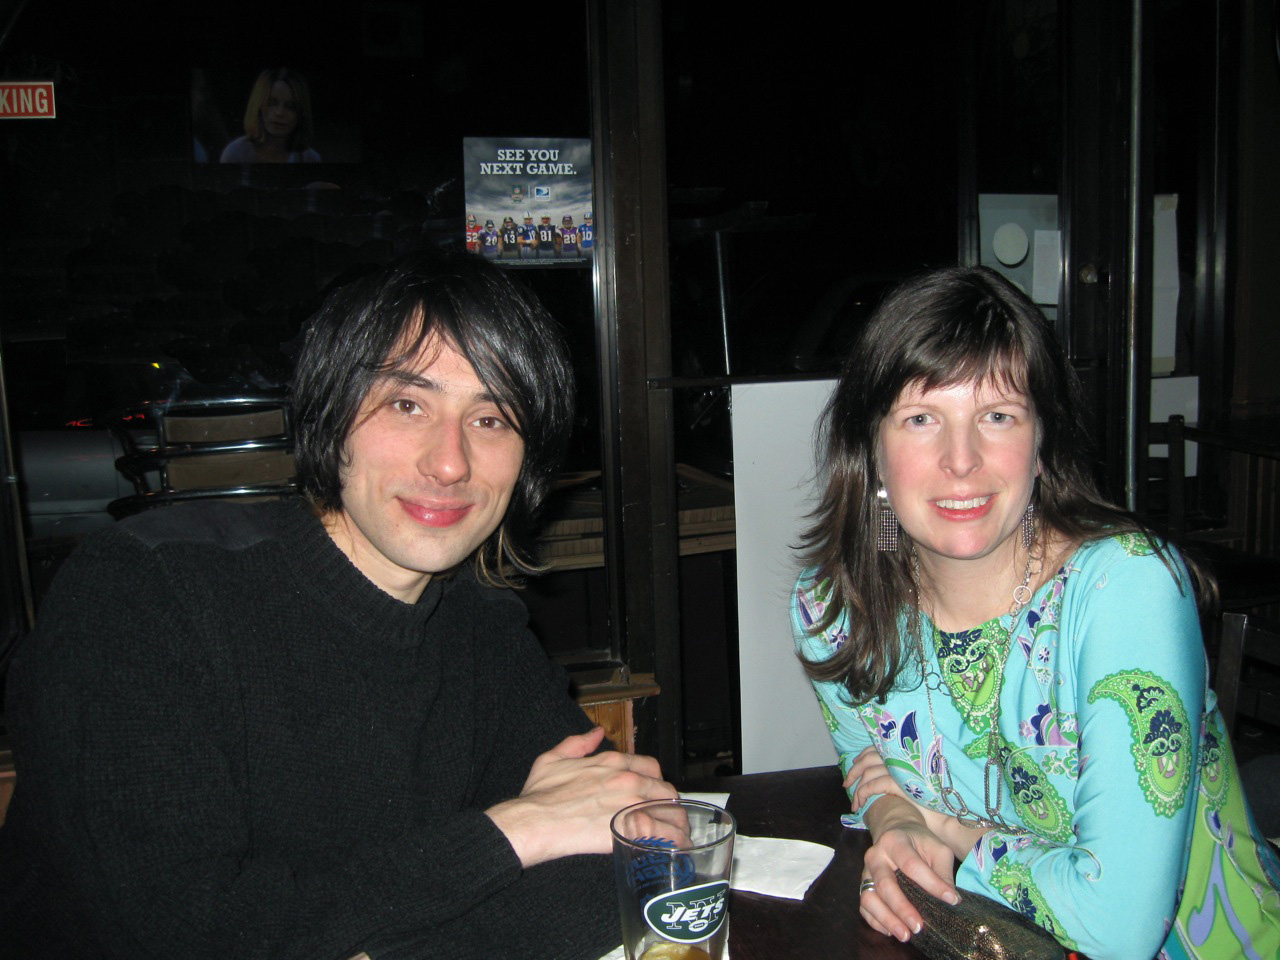 Performer and singer Joseph Keckler and Michelle Aldredge in New York City. (Photo by Geraldine Winifred Visco)